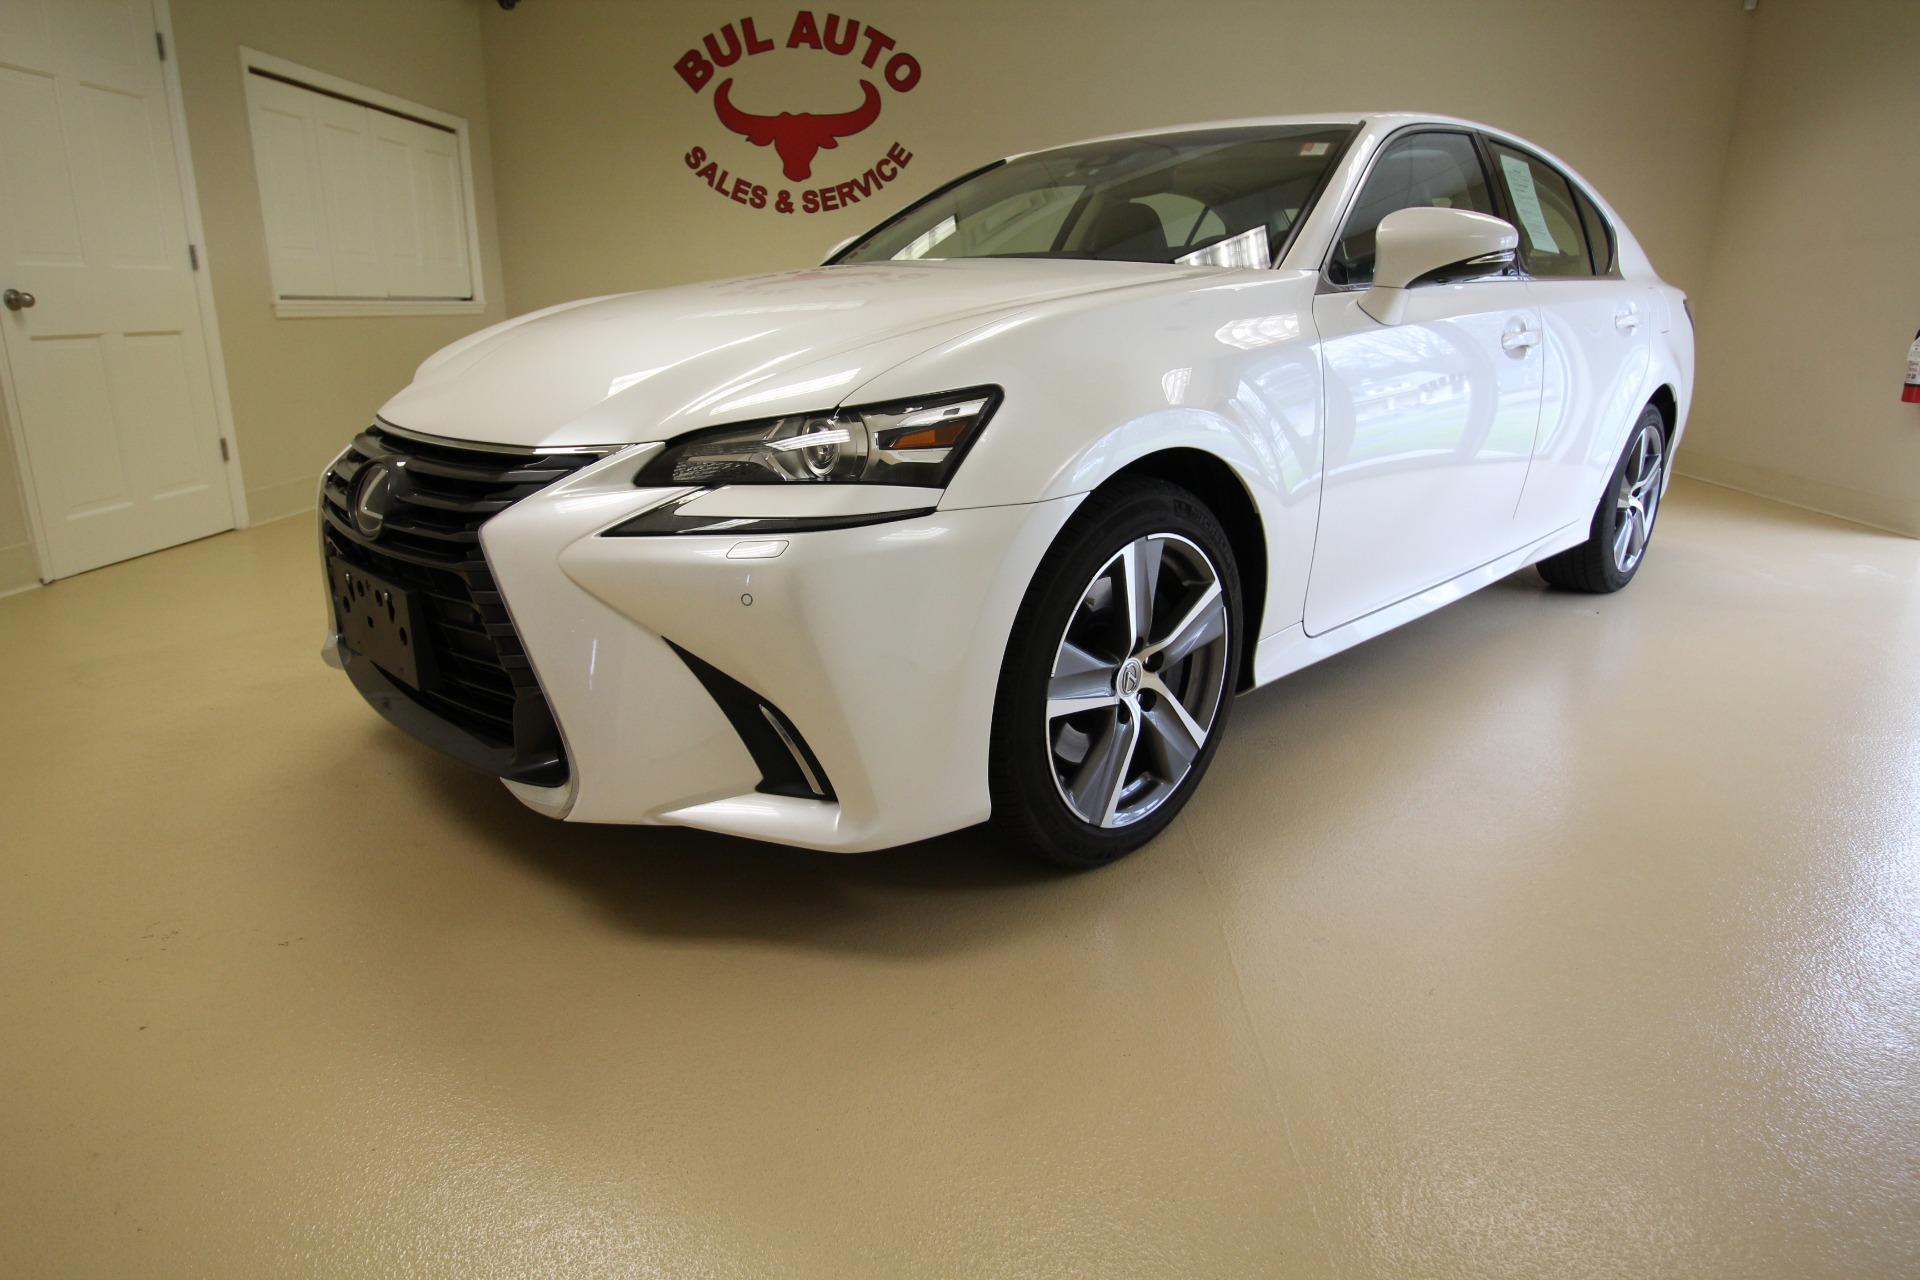 2016 lexus gs 350 awd stock 18082 for sale near albany ny ny lexus dealer for sale in. Black Bedroom Furniture Sets. Home Design Ideas